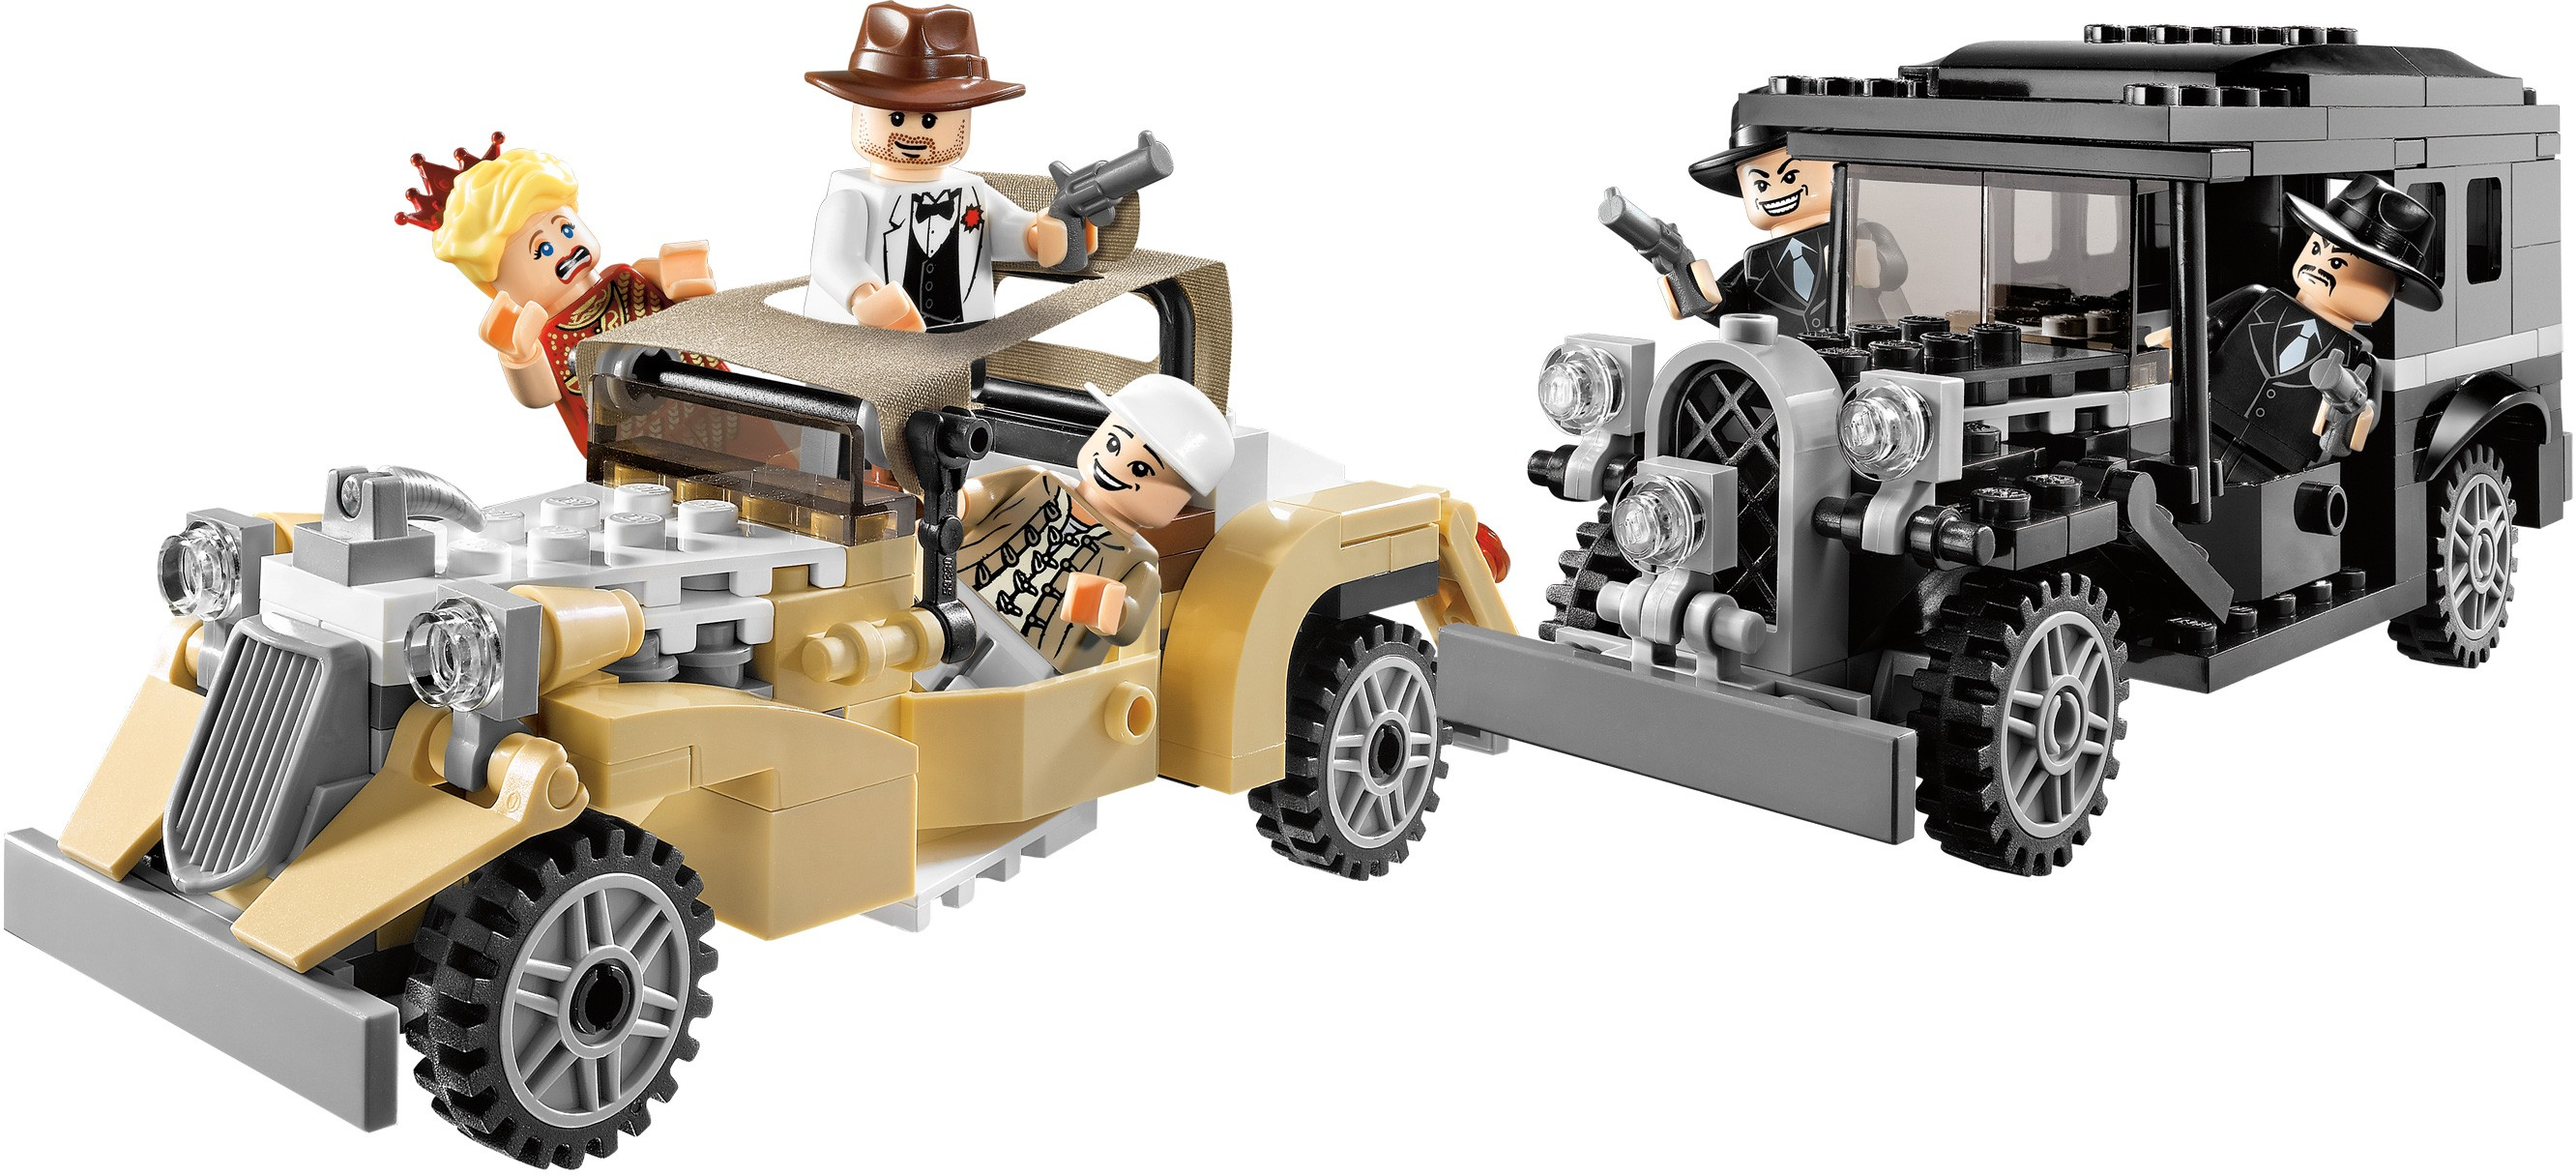 lego indiana jones instructions